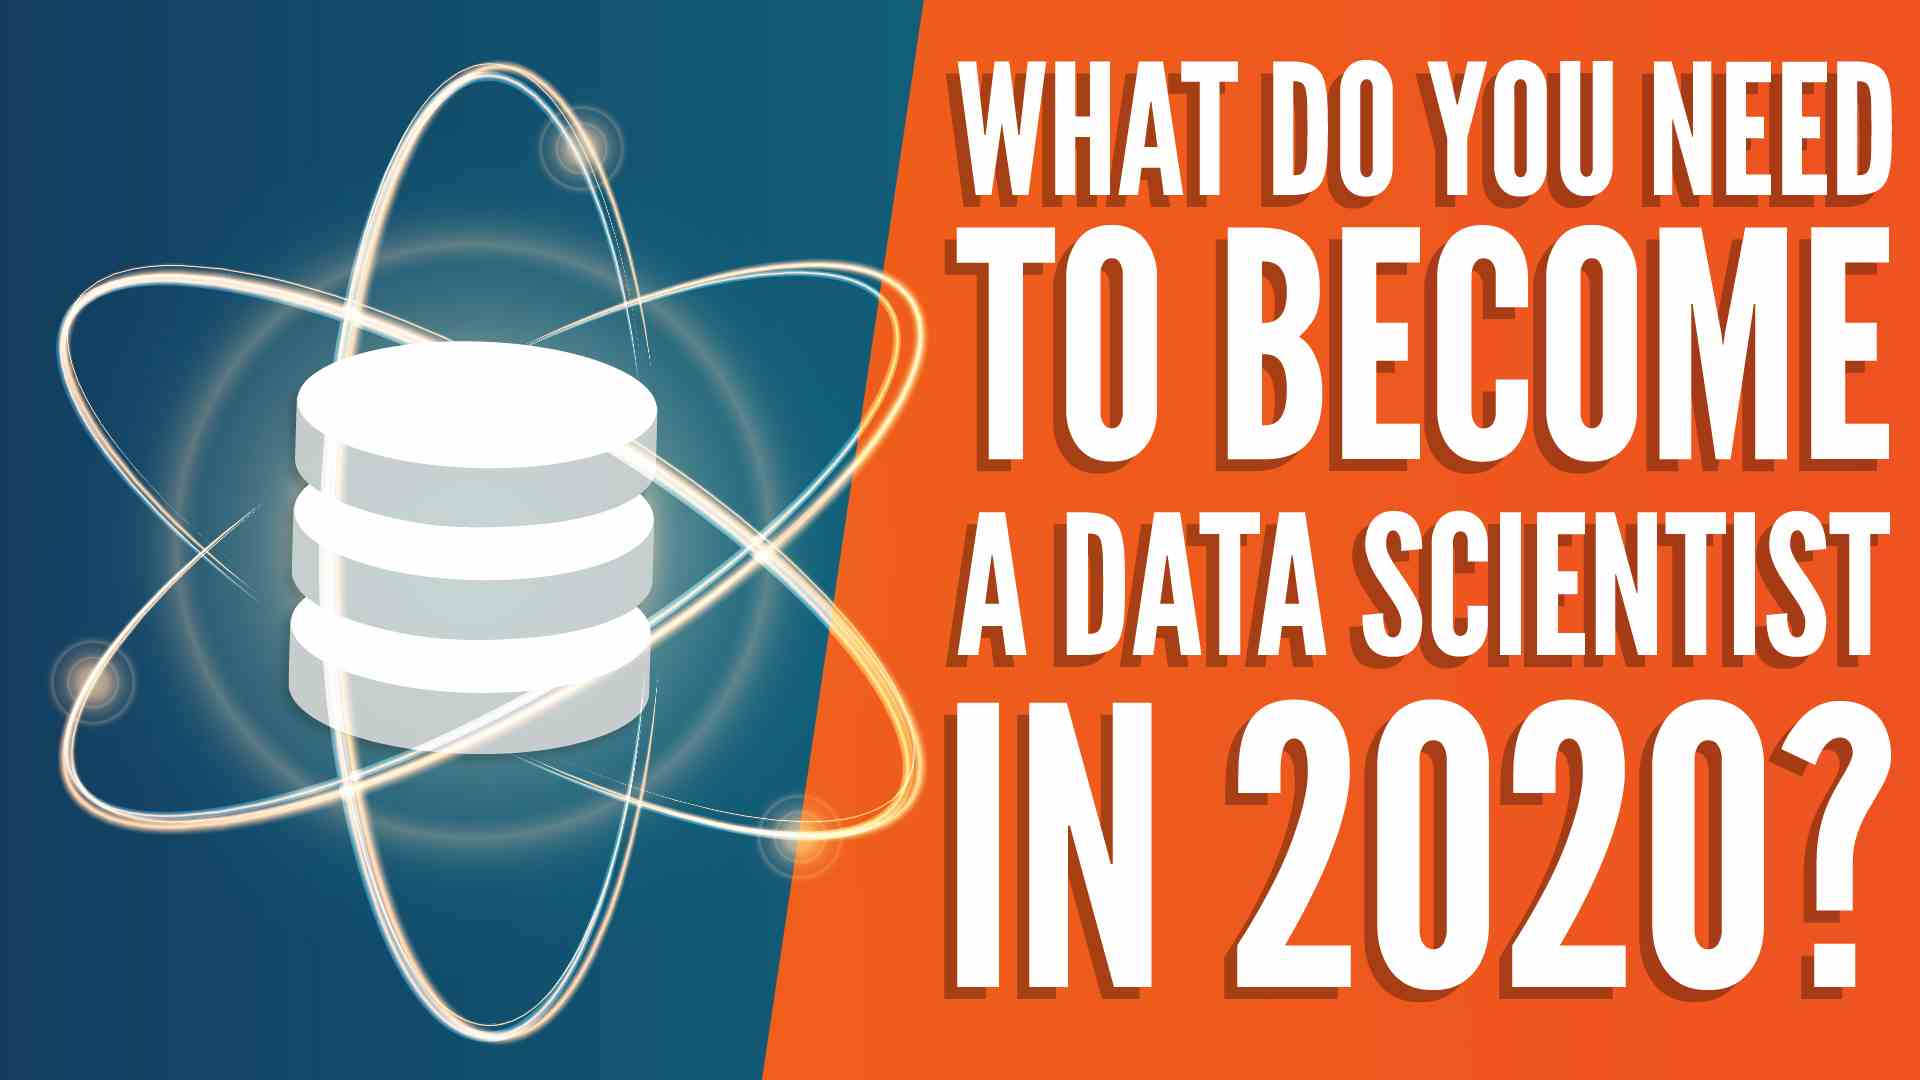 become data scientist in 2020, how to become a data scientist in 2020